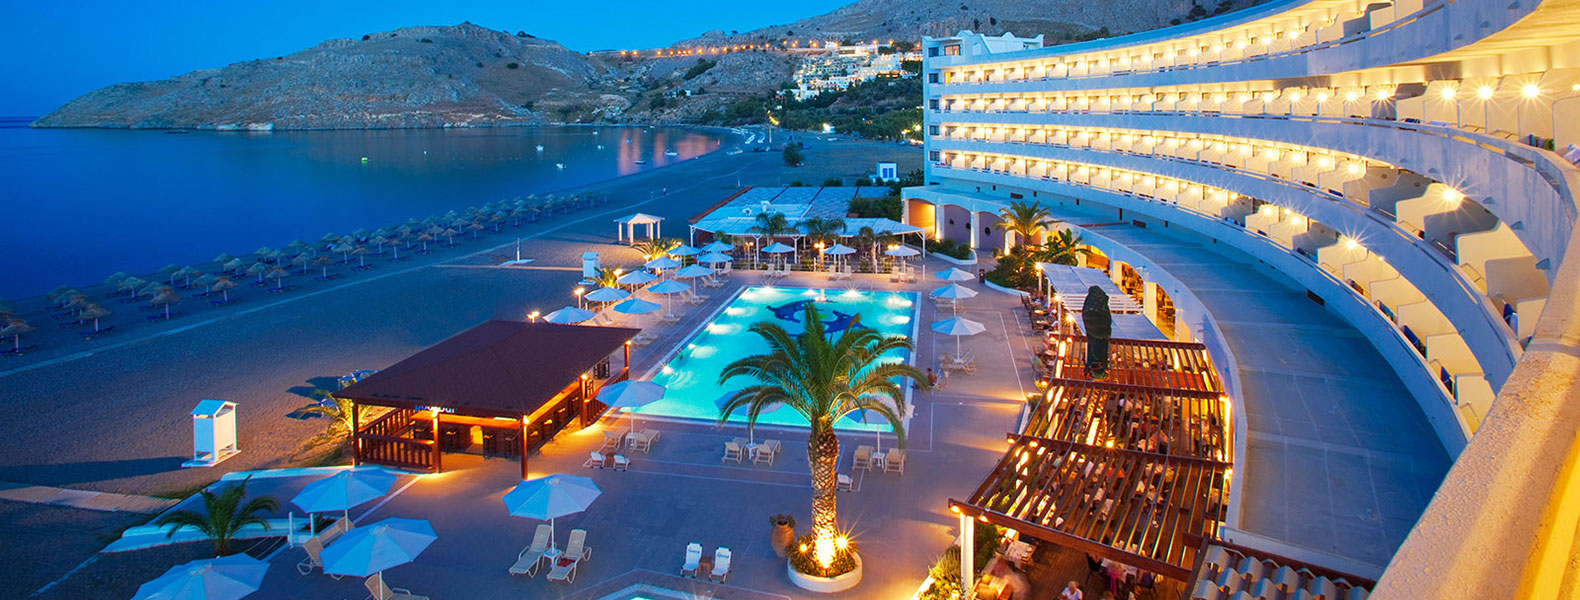 Sentido Lindos Bay - Welcome!